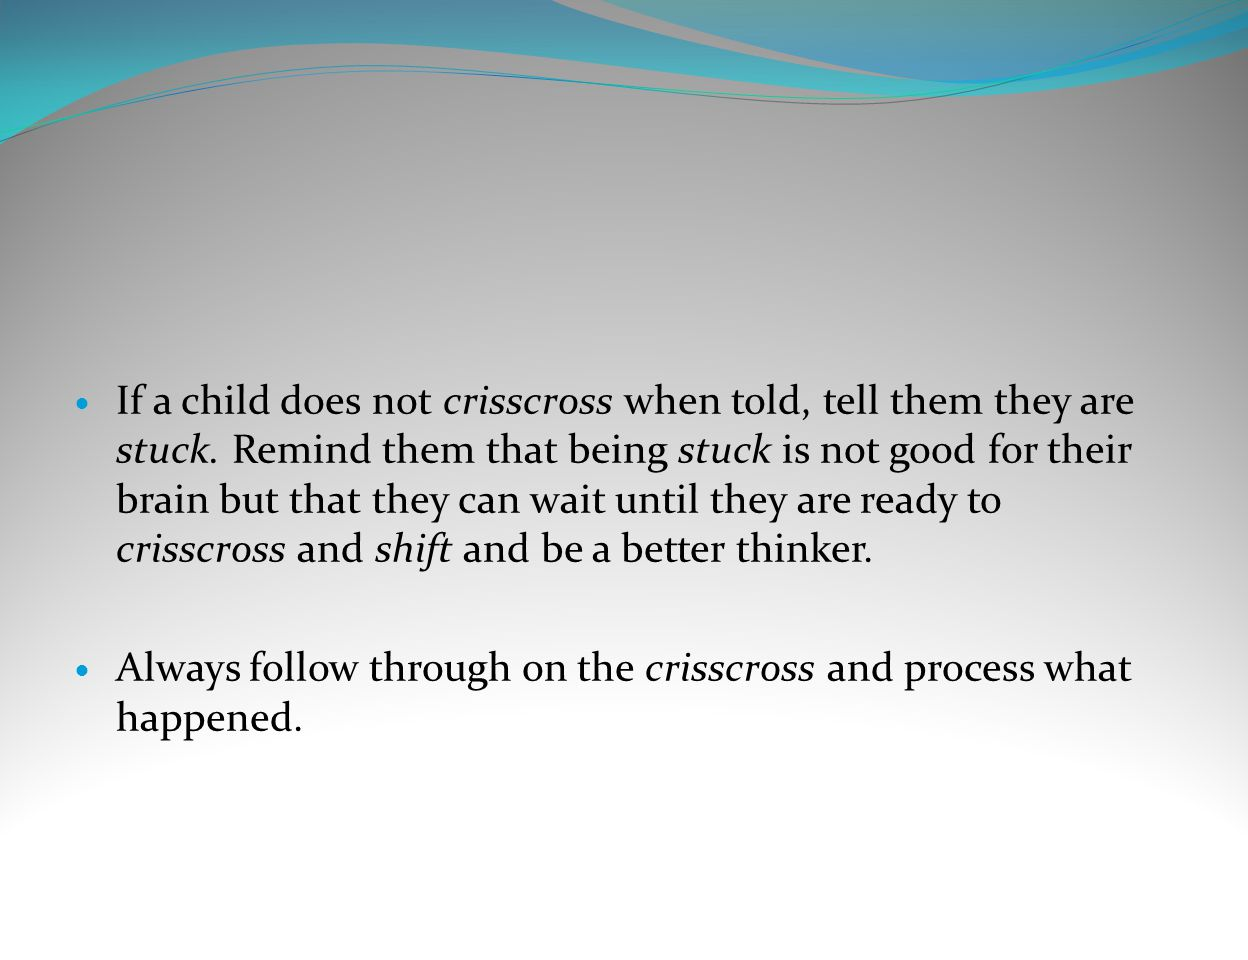 If a child does not crisscross when told, tell them they are stuck